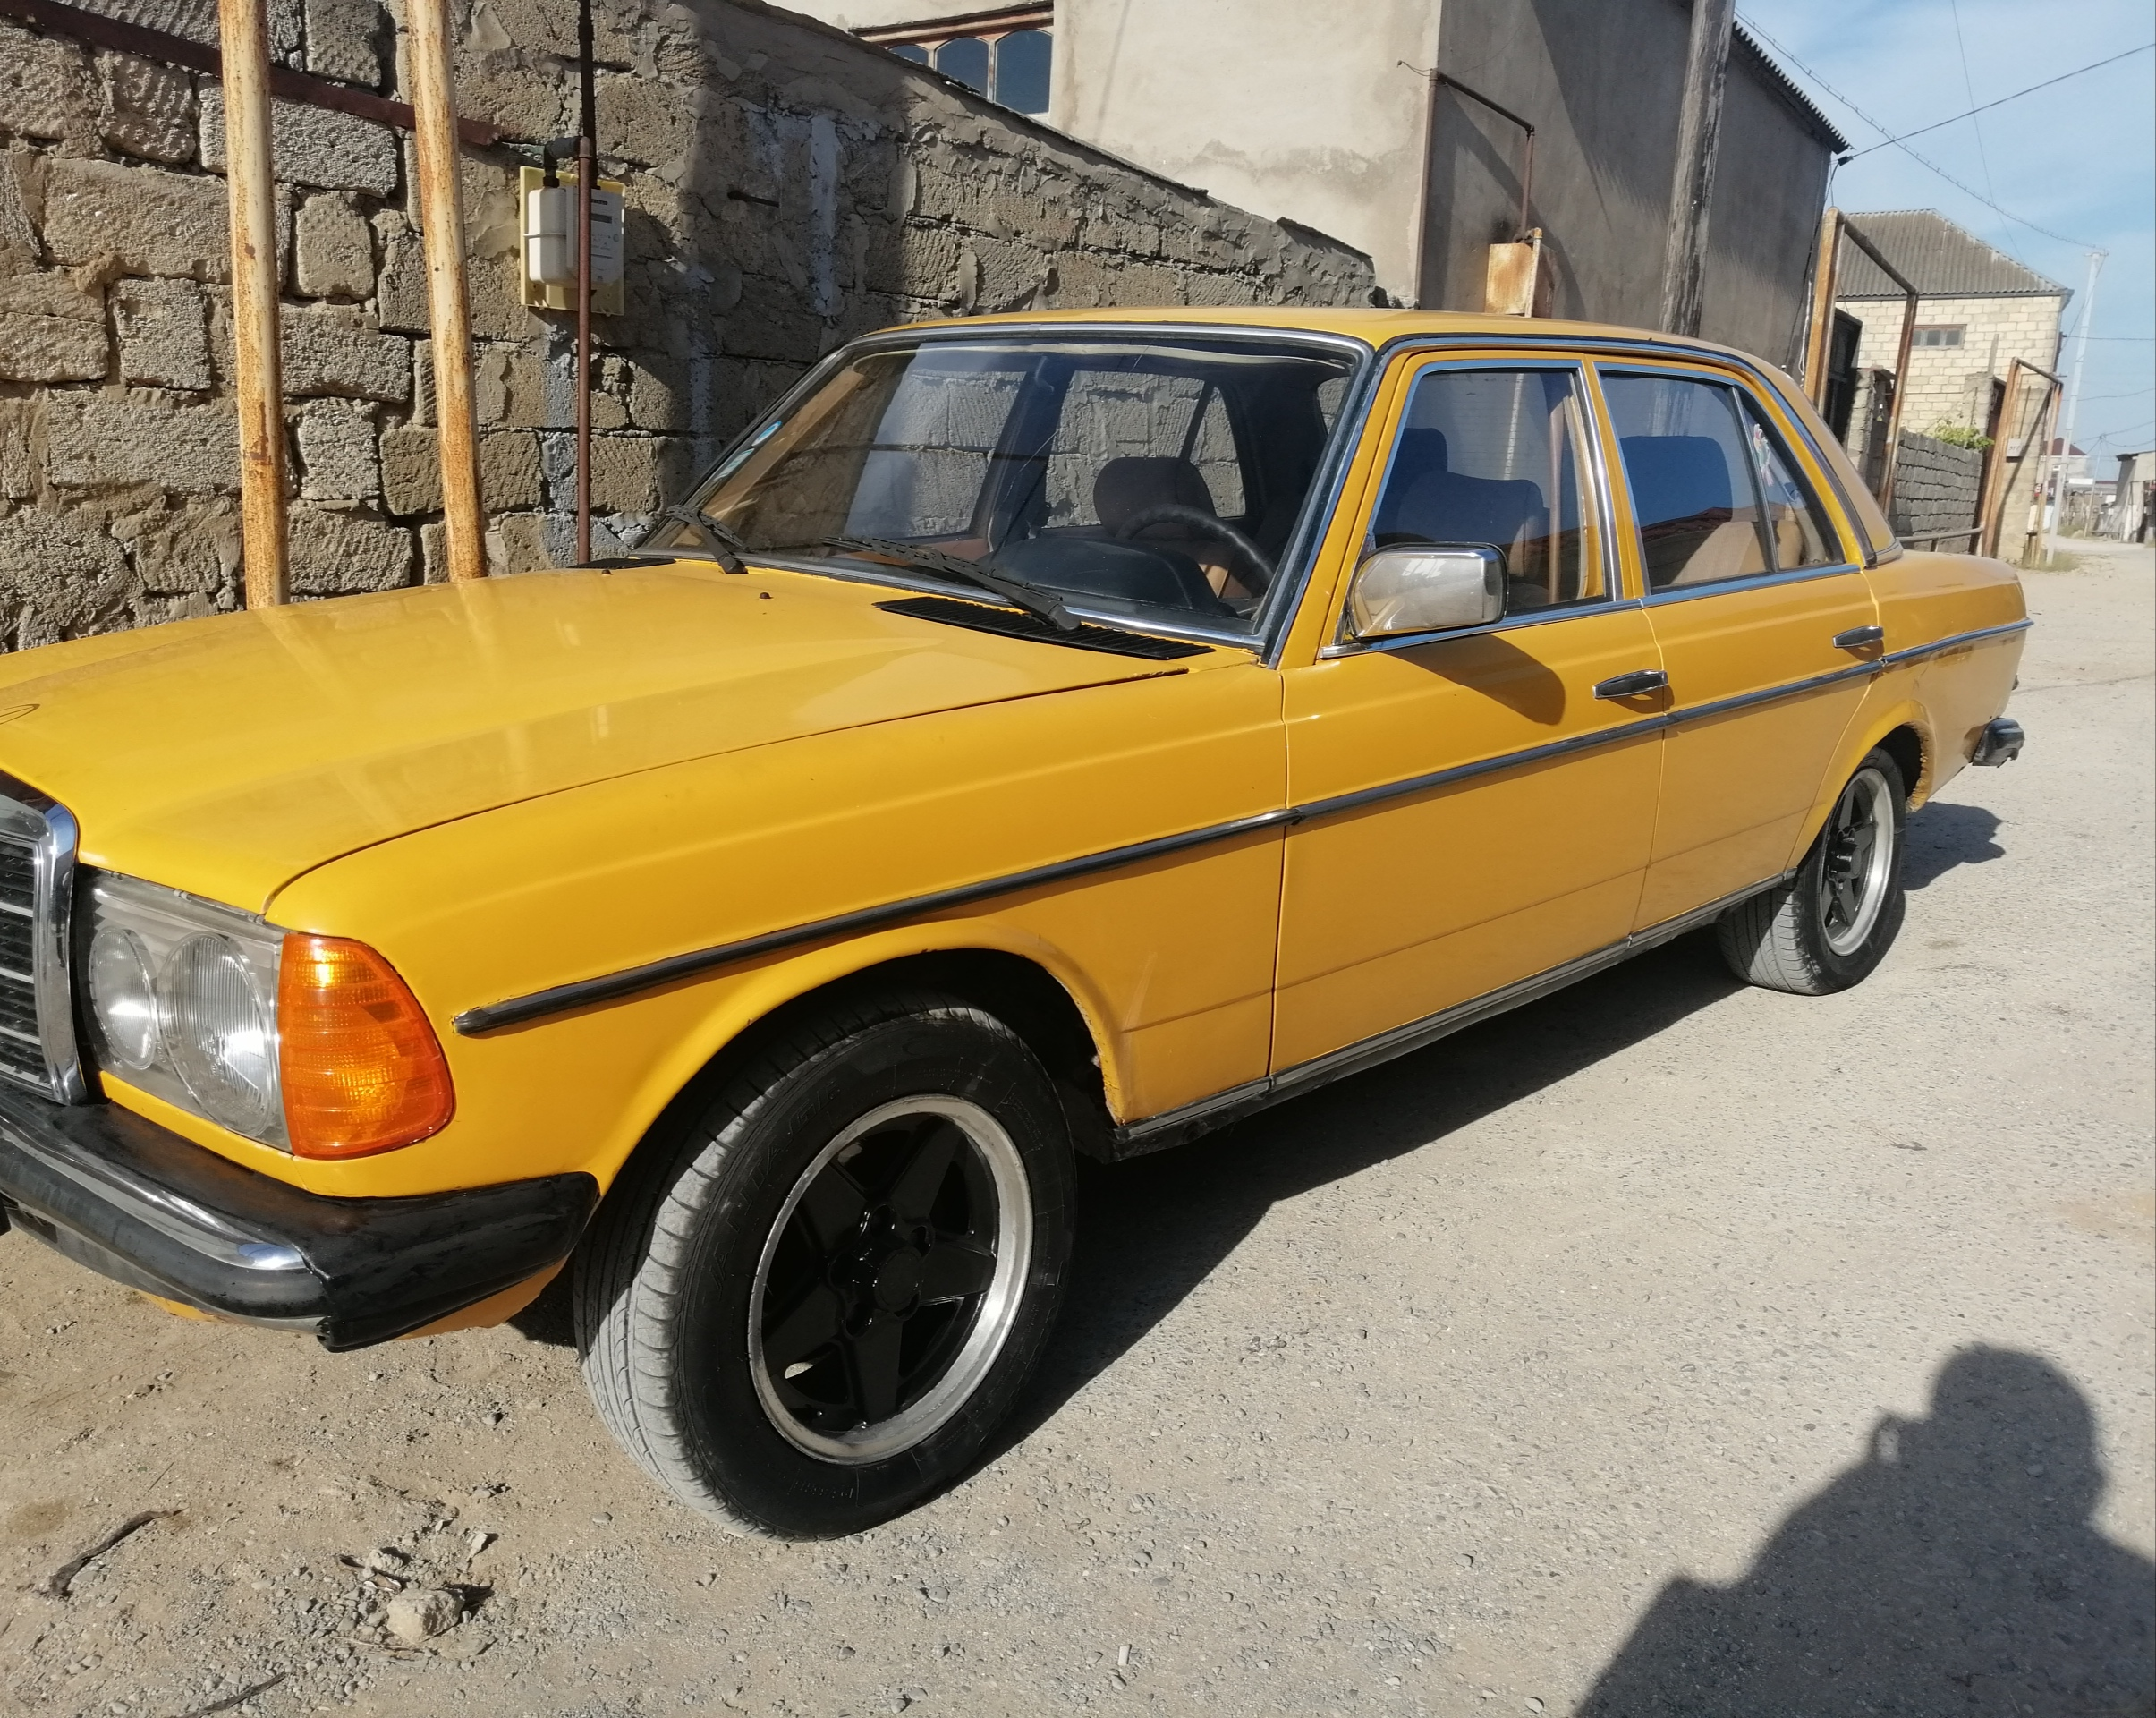 Mercedes-Benz 200 2.3(lt) 1981 Second hand  $2500